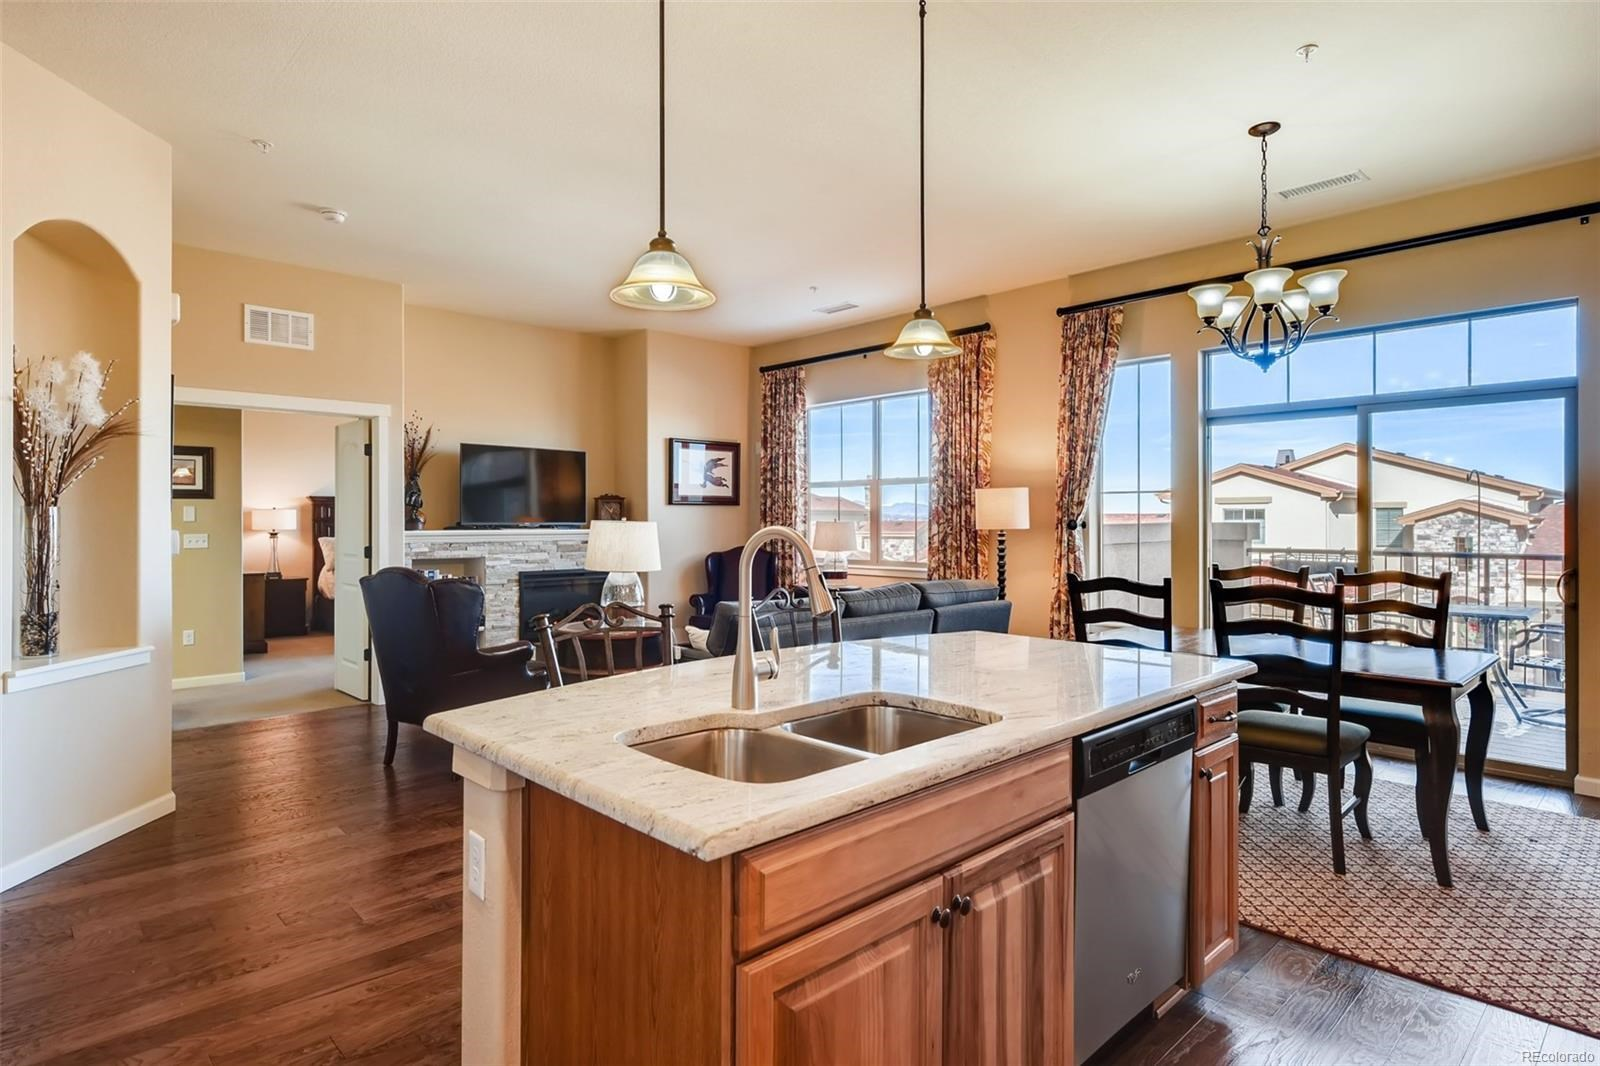 MLS# 6336333 - 7 - 2262 Primo Road #205, Highlands Ranch, CO 80129